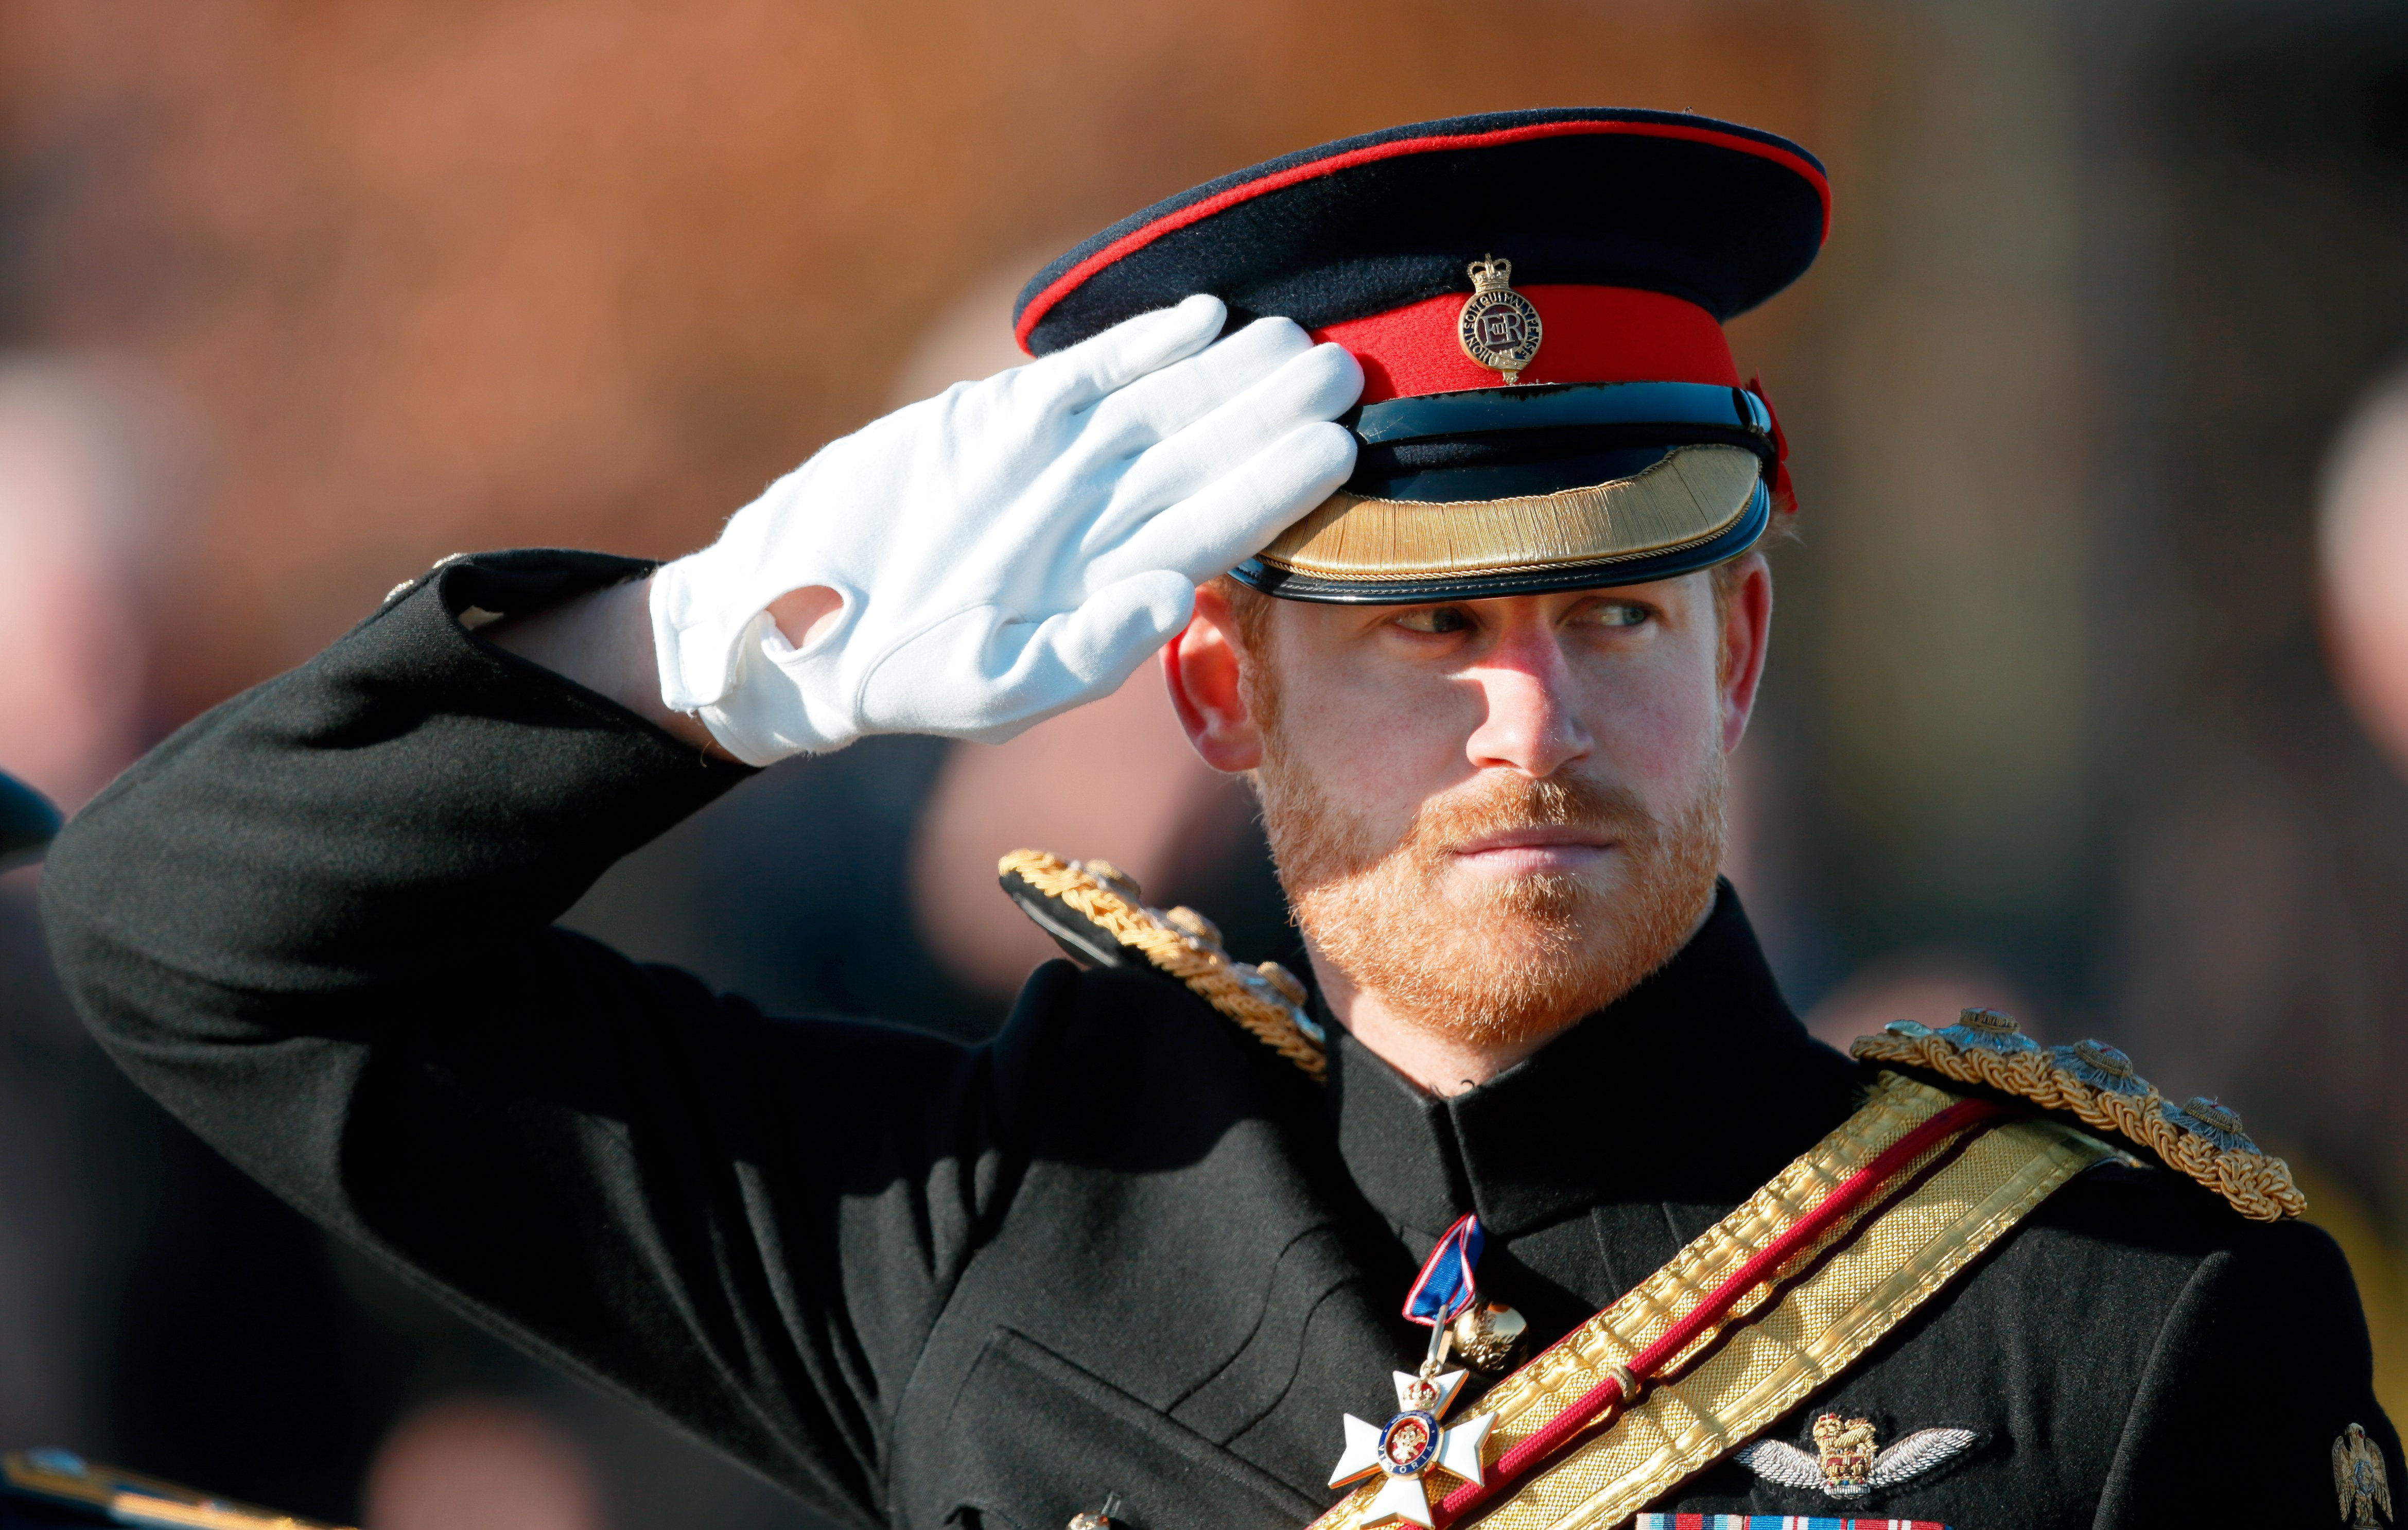 Prince Harry attends the Armistice Day Service at the National Memorial Arboretum on November 11, 2016 in Alrewas, England | Photo: Getty Images